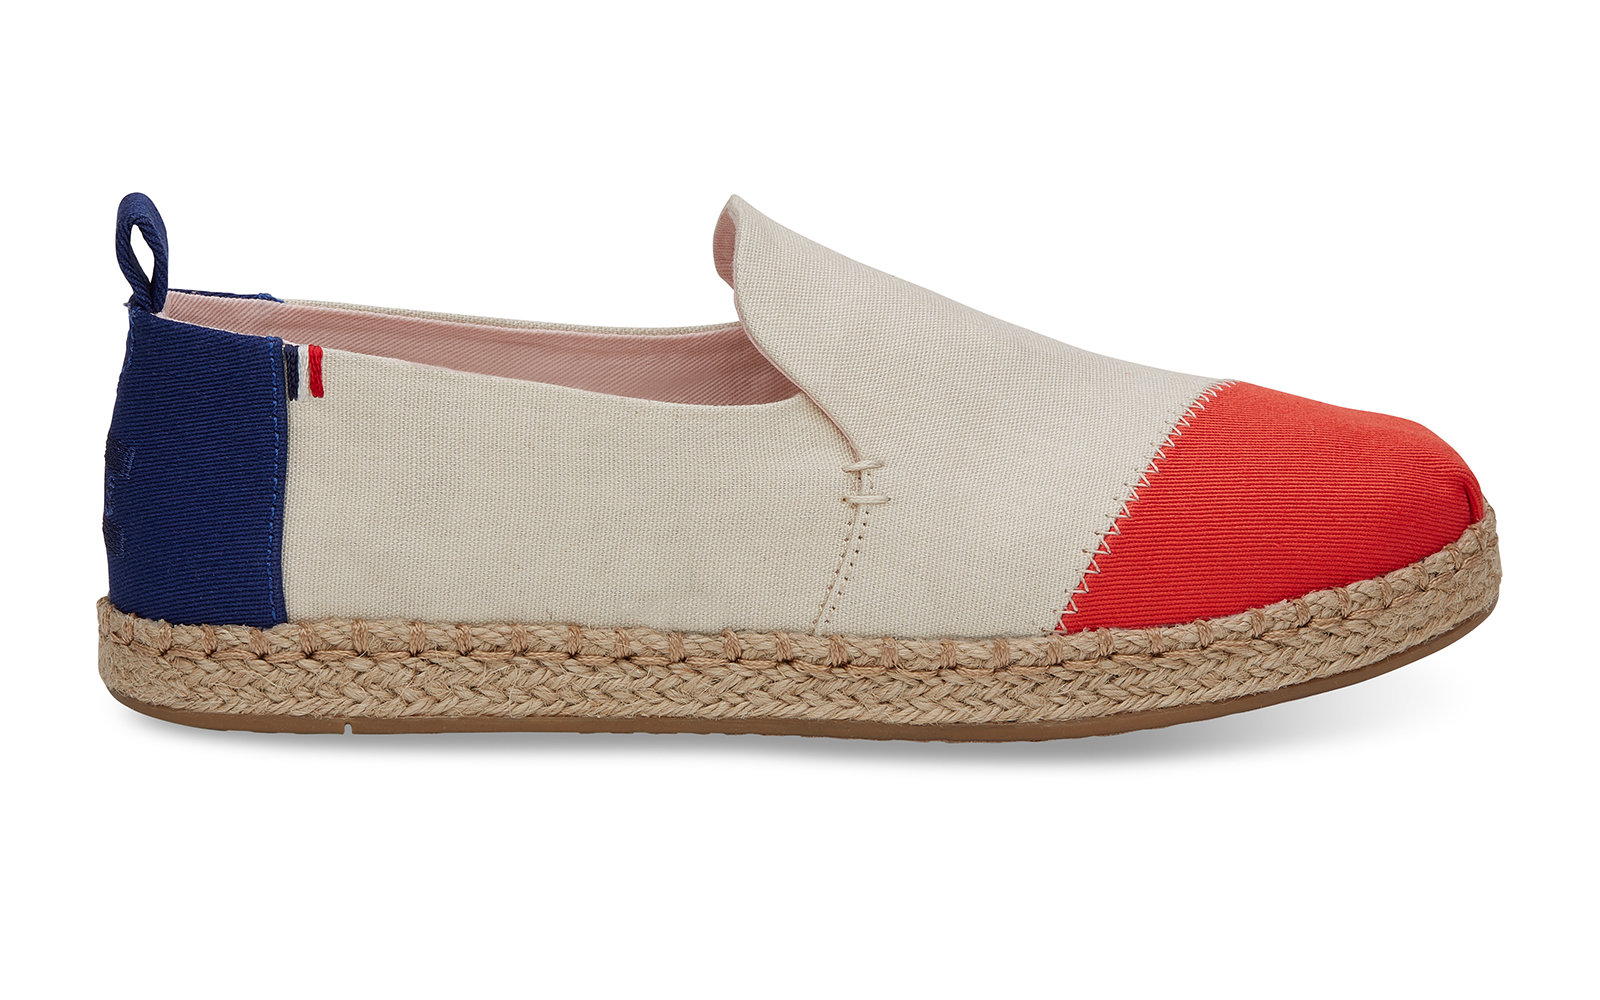 Clare V. Color Block Canvas Women's Deconstructed Alpargatas